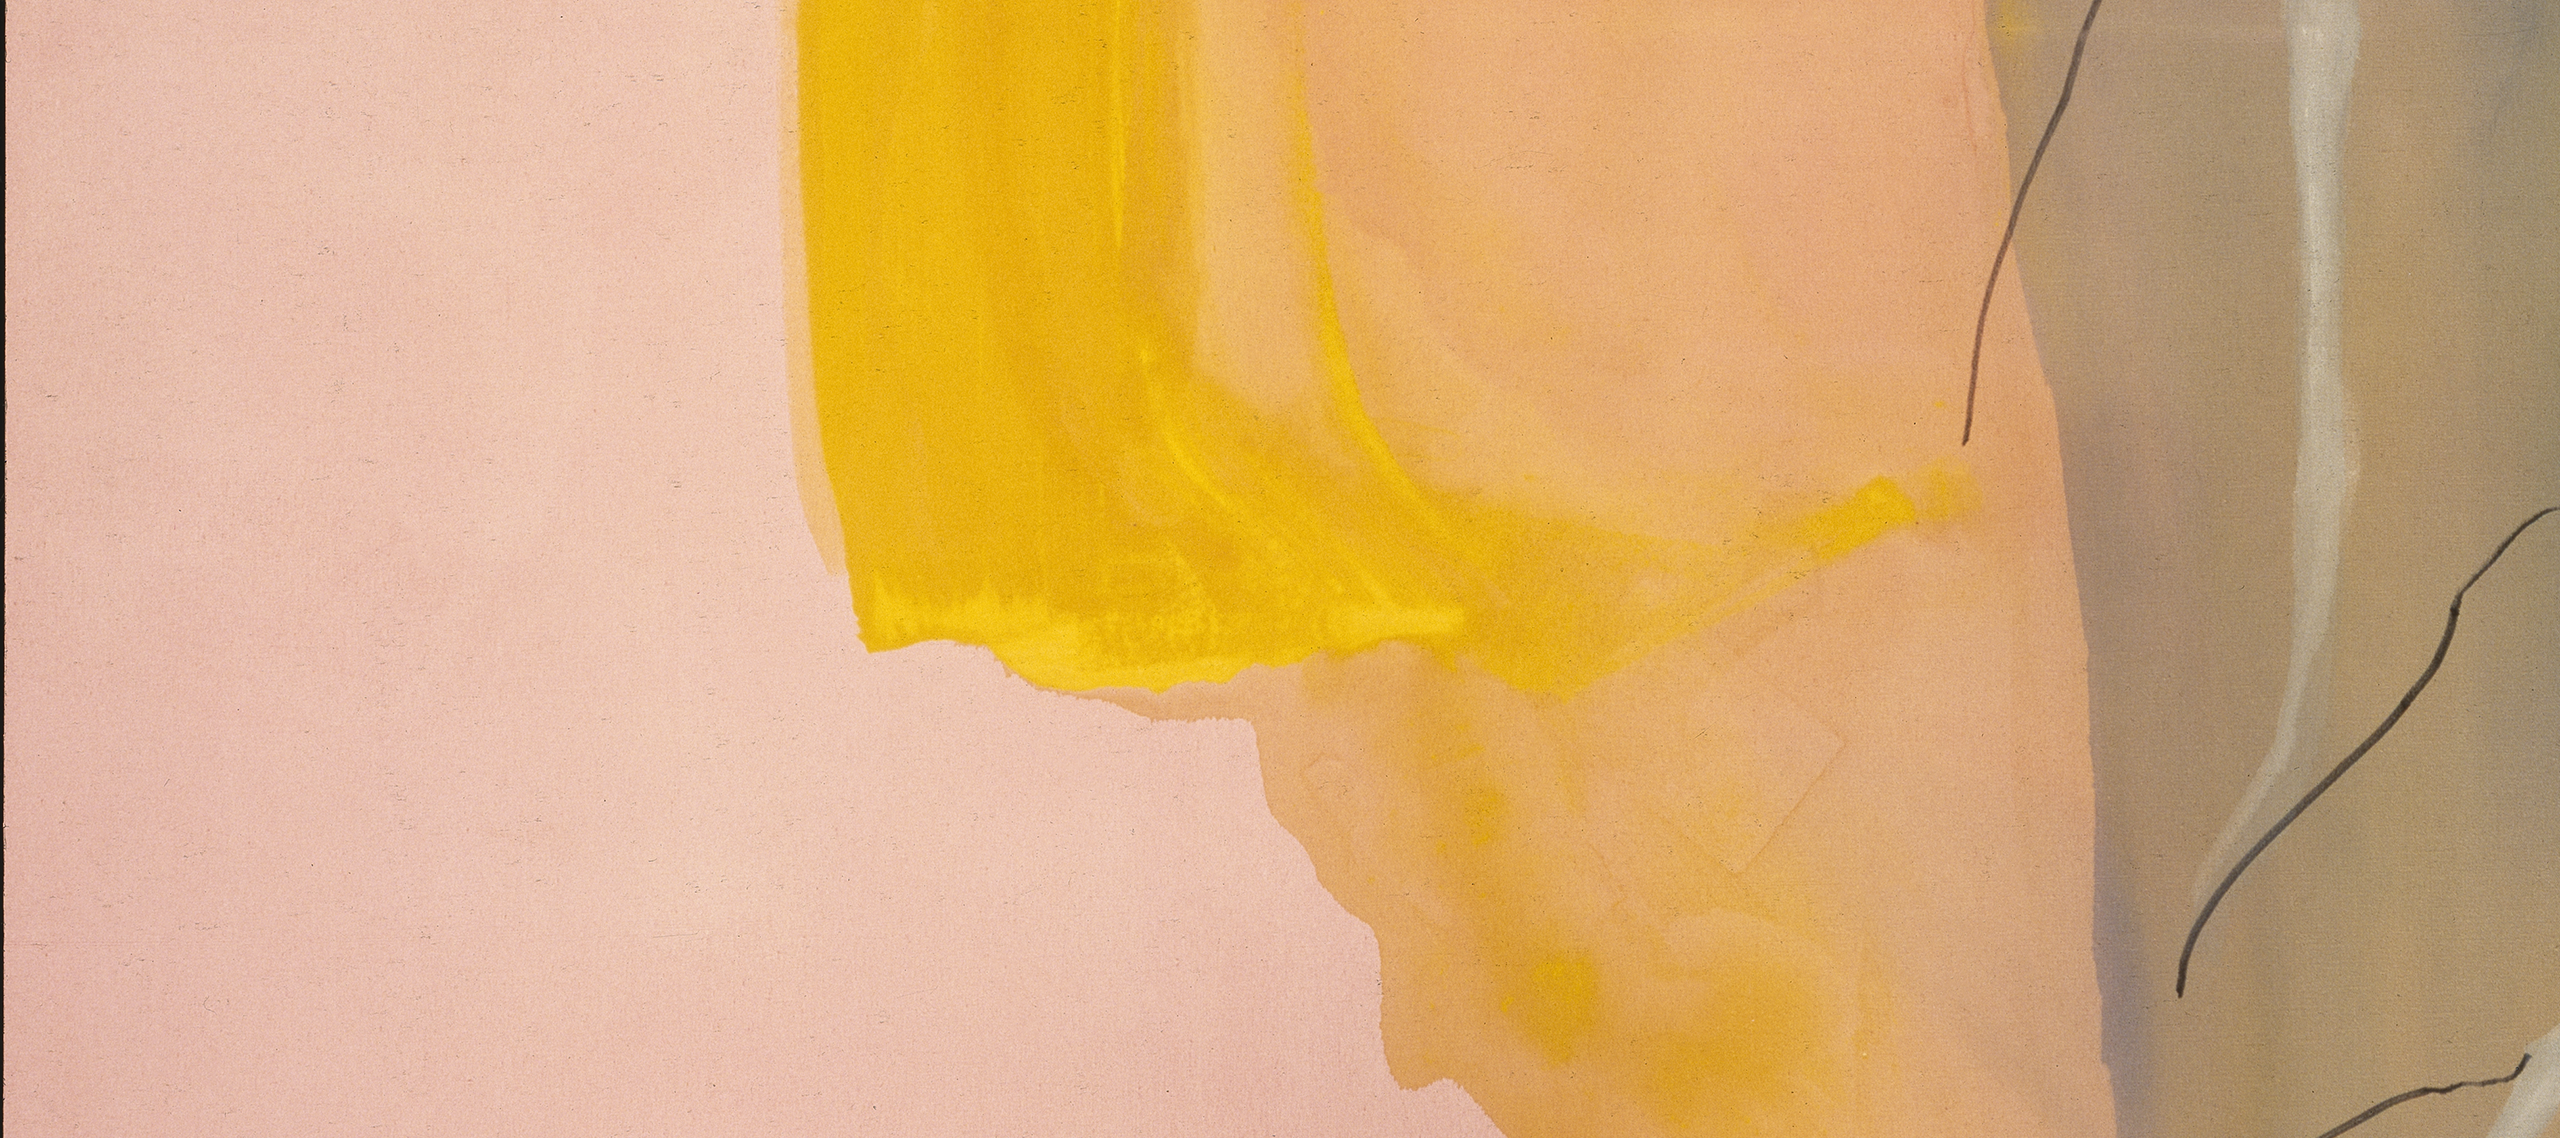 Large vertical painting in minimalist style features thinned pigments poured in translucent layers onto the unsized canvas. The abstract composition is dominated by a central ambiguous form in vibrant yellow-orange and peach, flanked by amorphous swaths of pale pink and a dark gray.